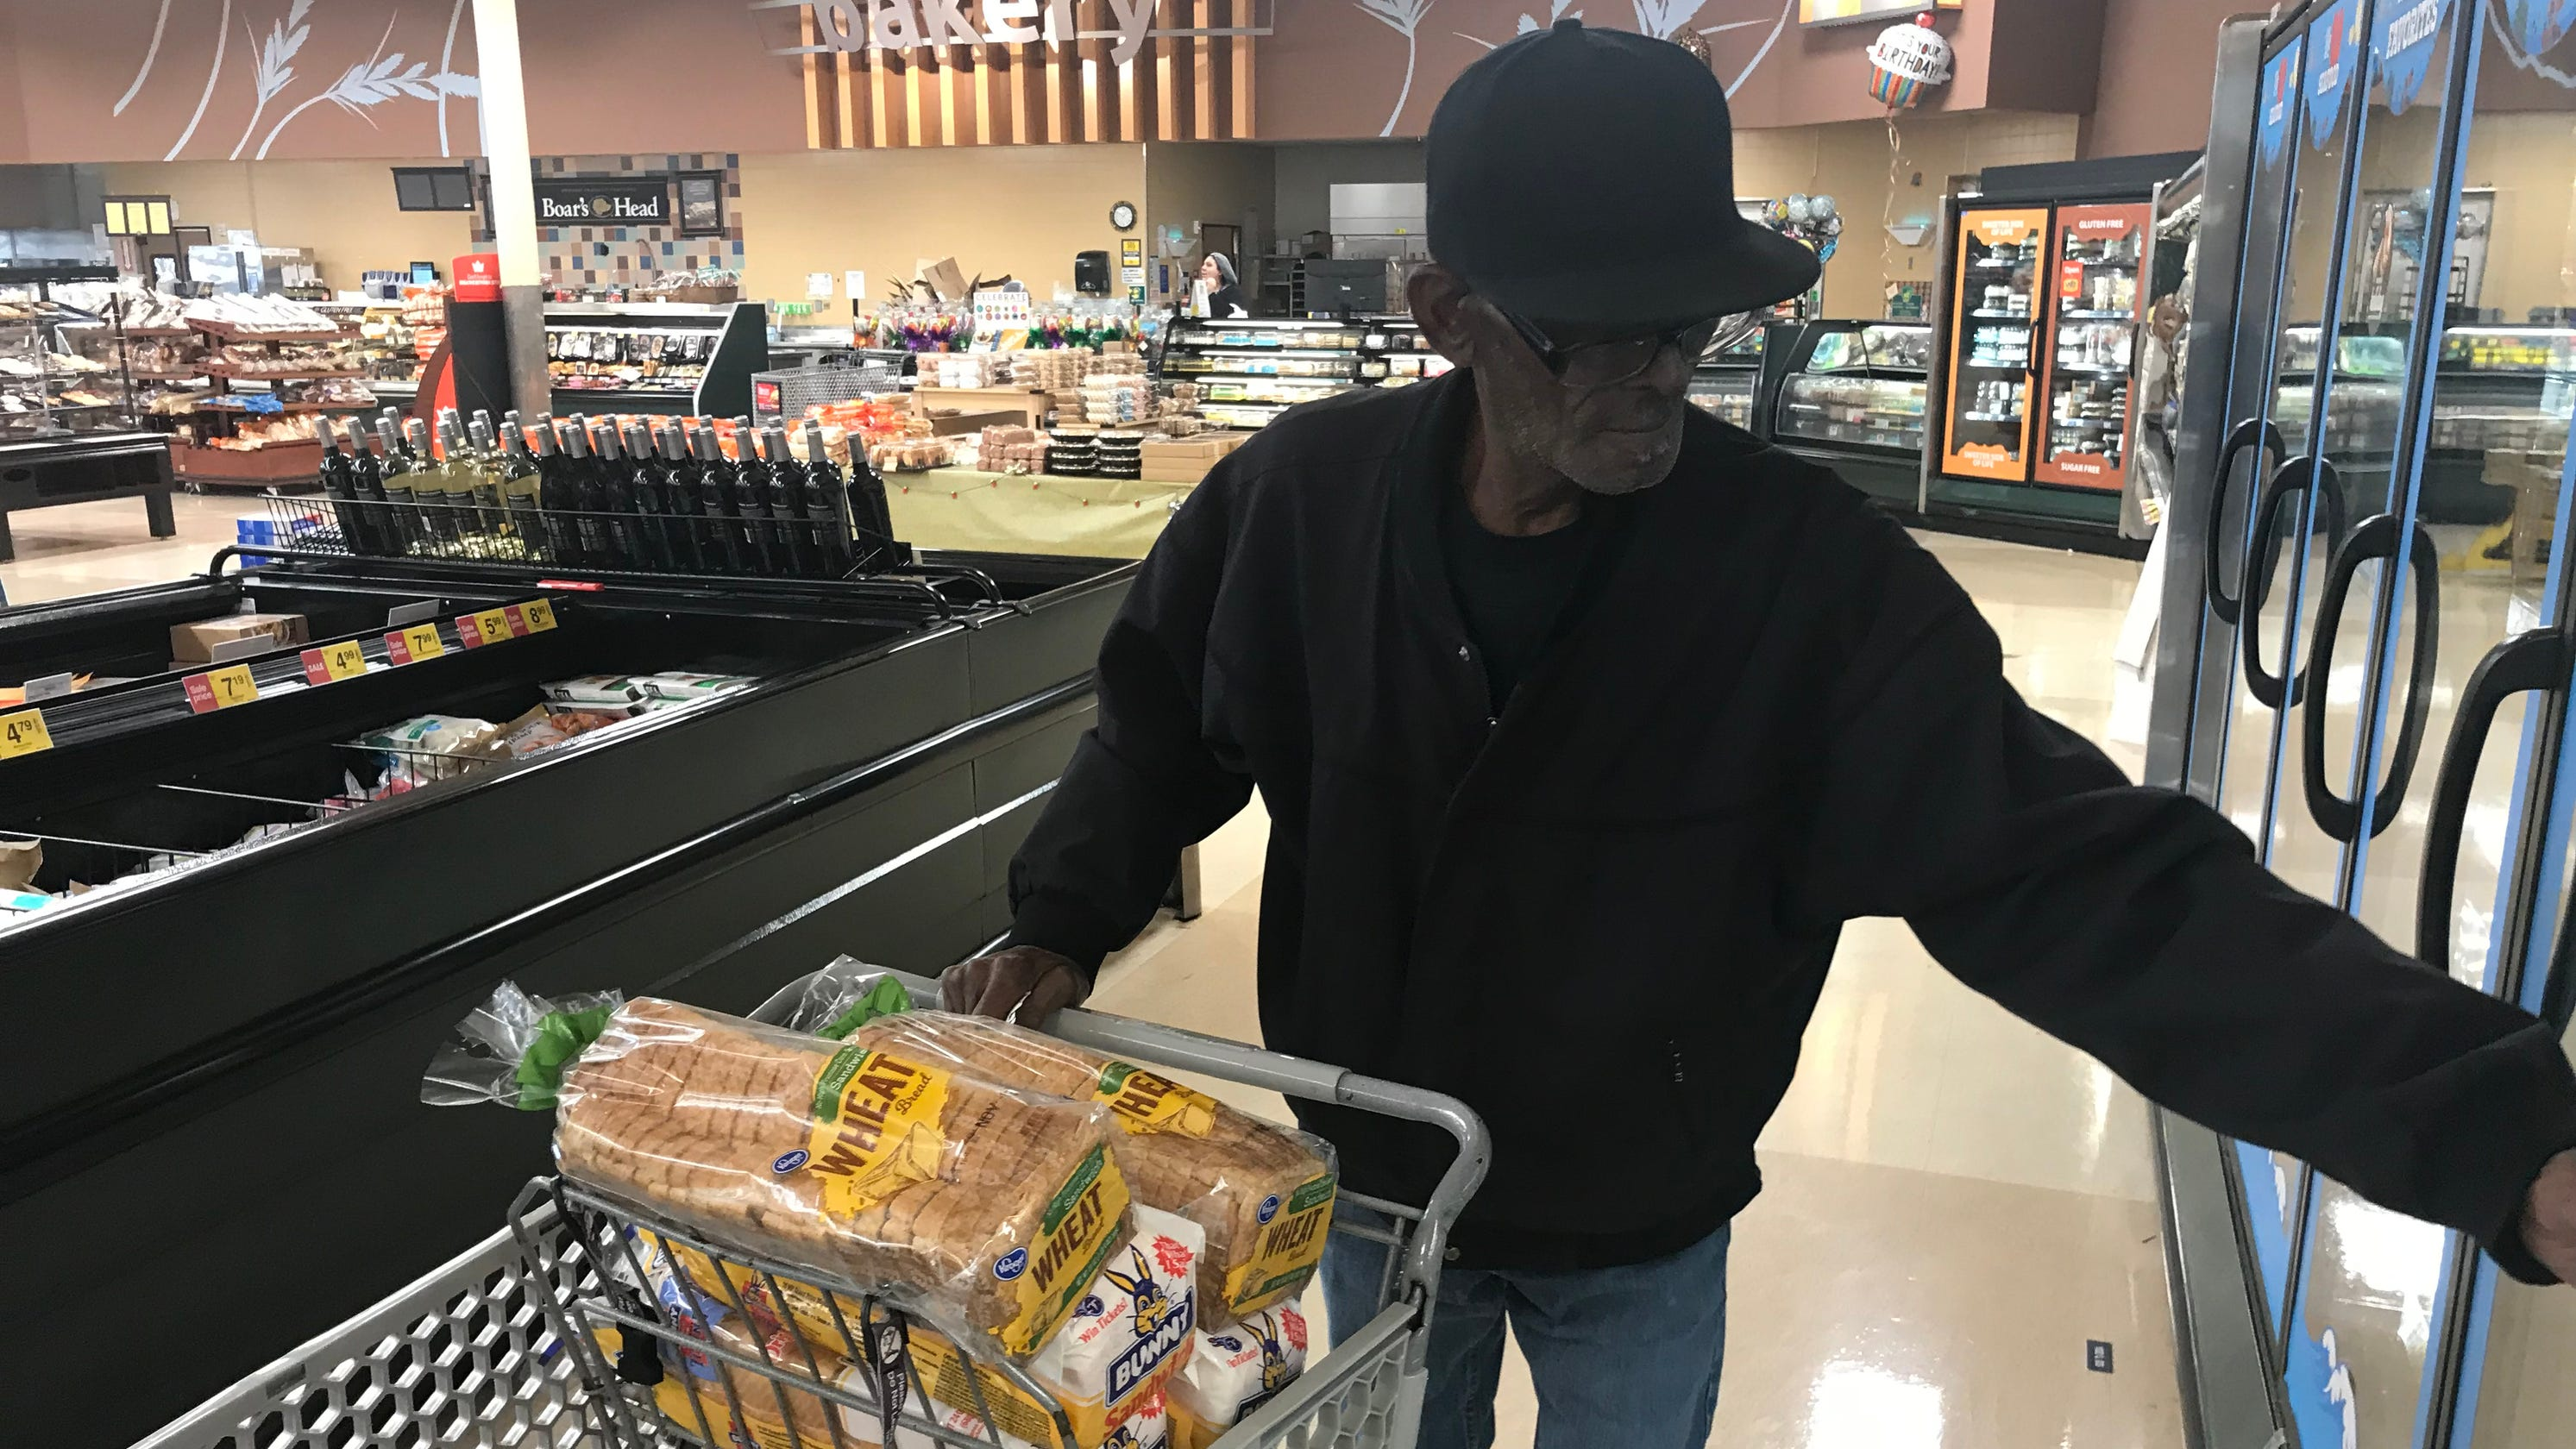 Downtown Franklin's food desert leaves low-income residents with few options for fresh groceries